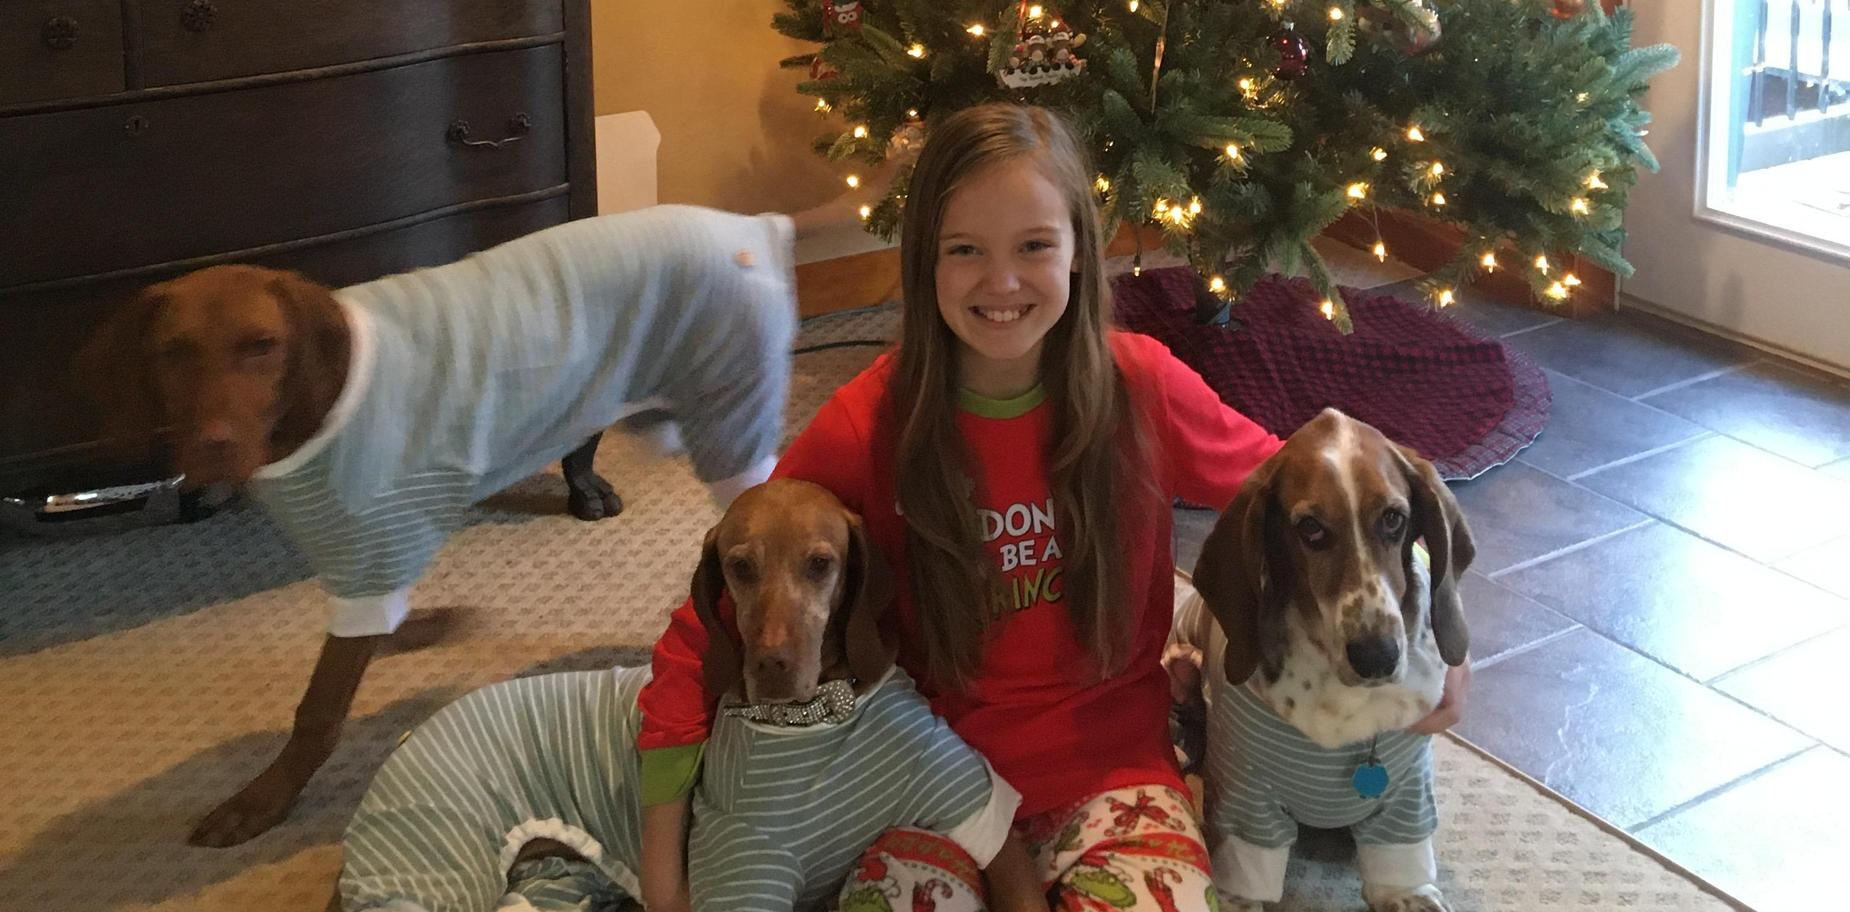 Student in holiday attire with her dogs